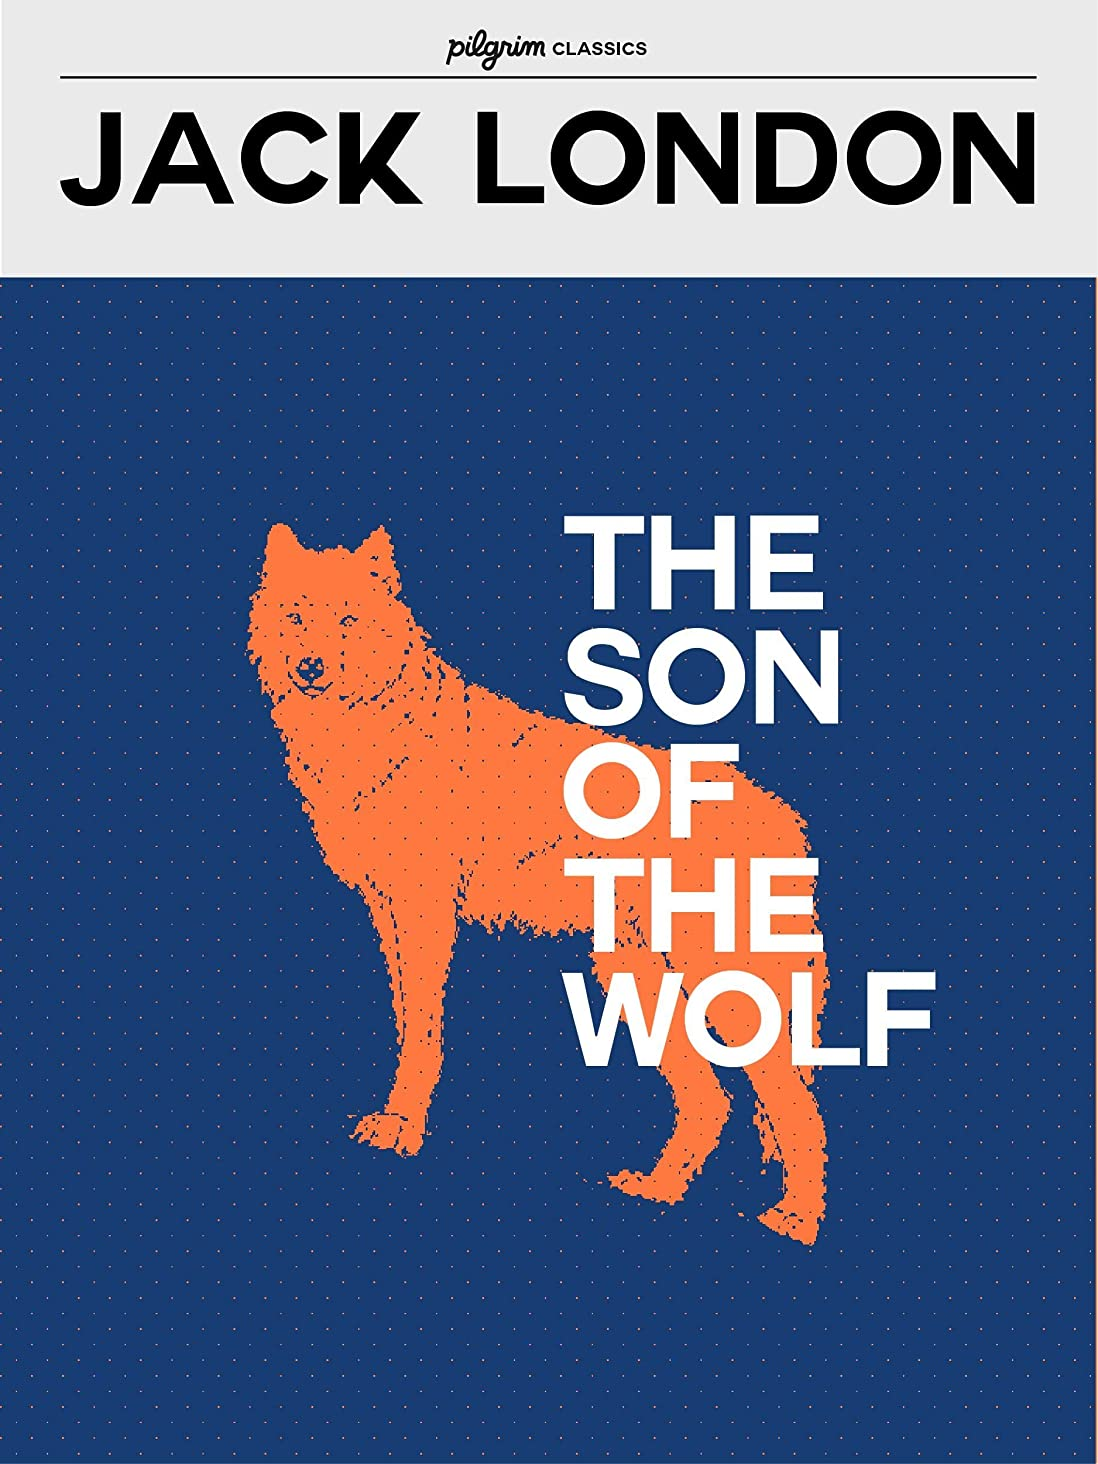 The Son of the Wolf (Pilgrim Classics Annotated) (English Edition)